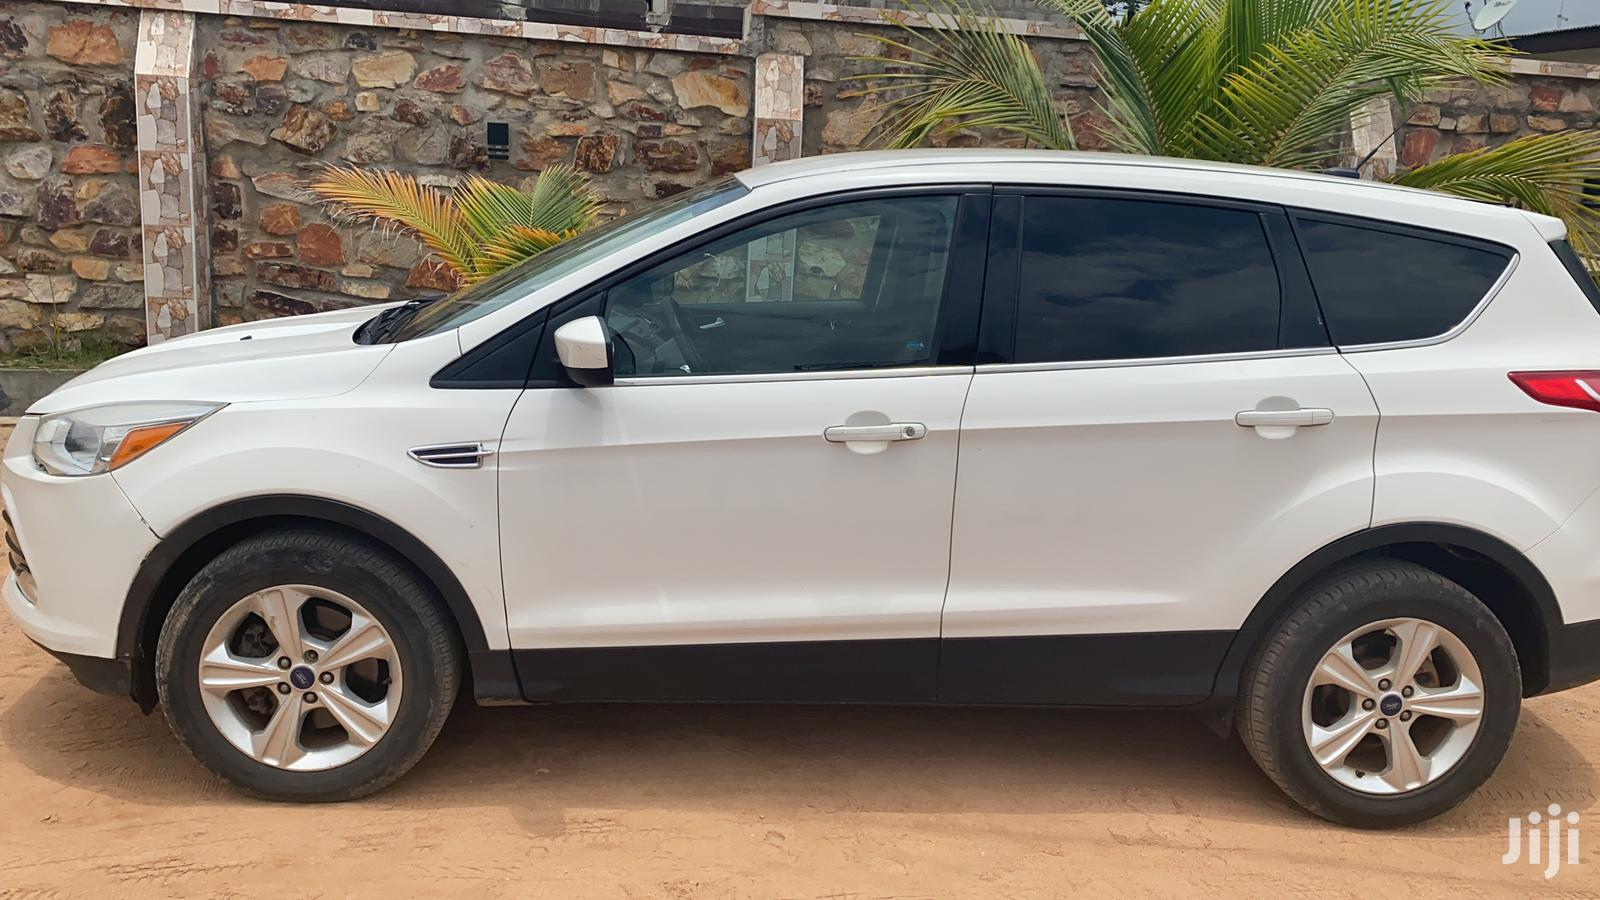 Ford Escape 2014 White | Cars for sale in Ga South Municipal, Greater Accra, Ghana